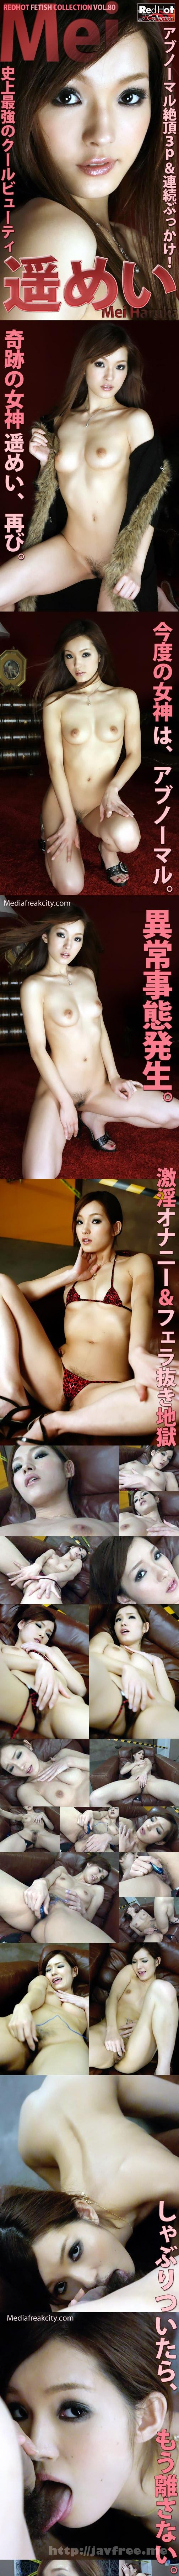 [RED-097] Red Hot Fetish Collection Vol.80 : Mei Haruka